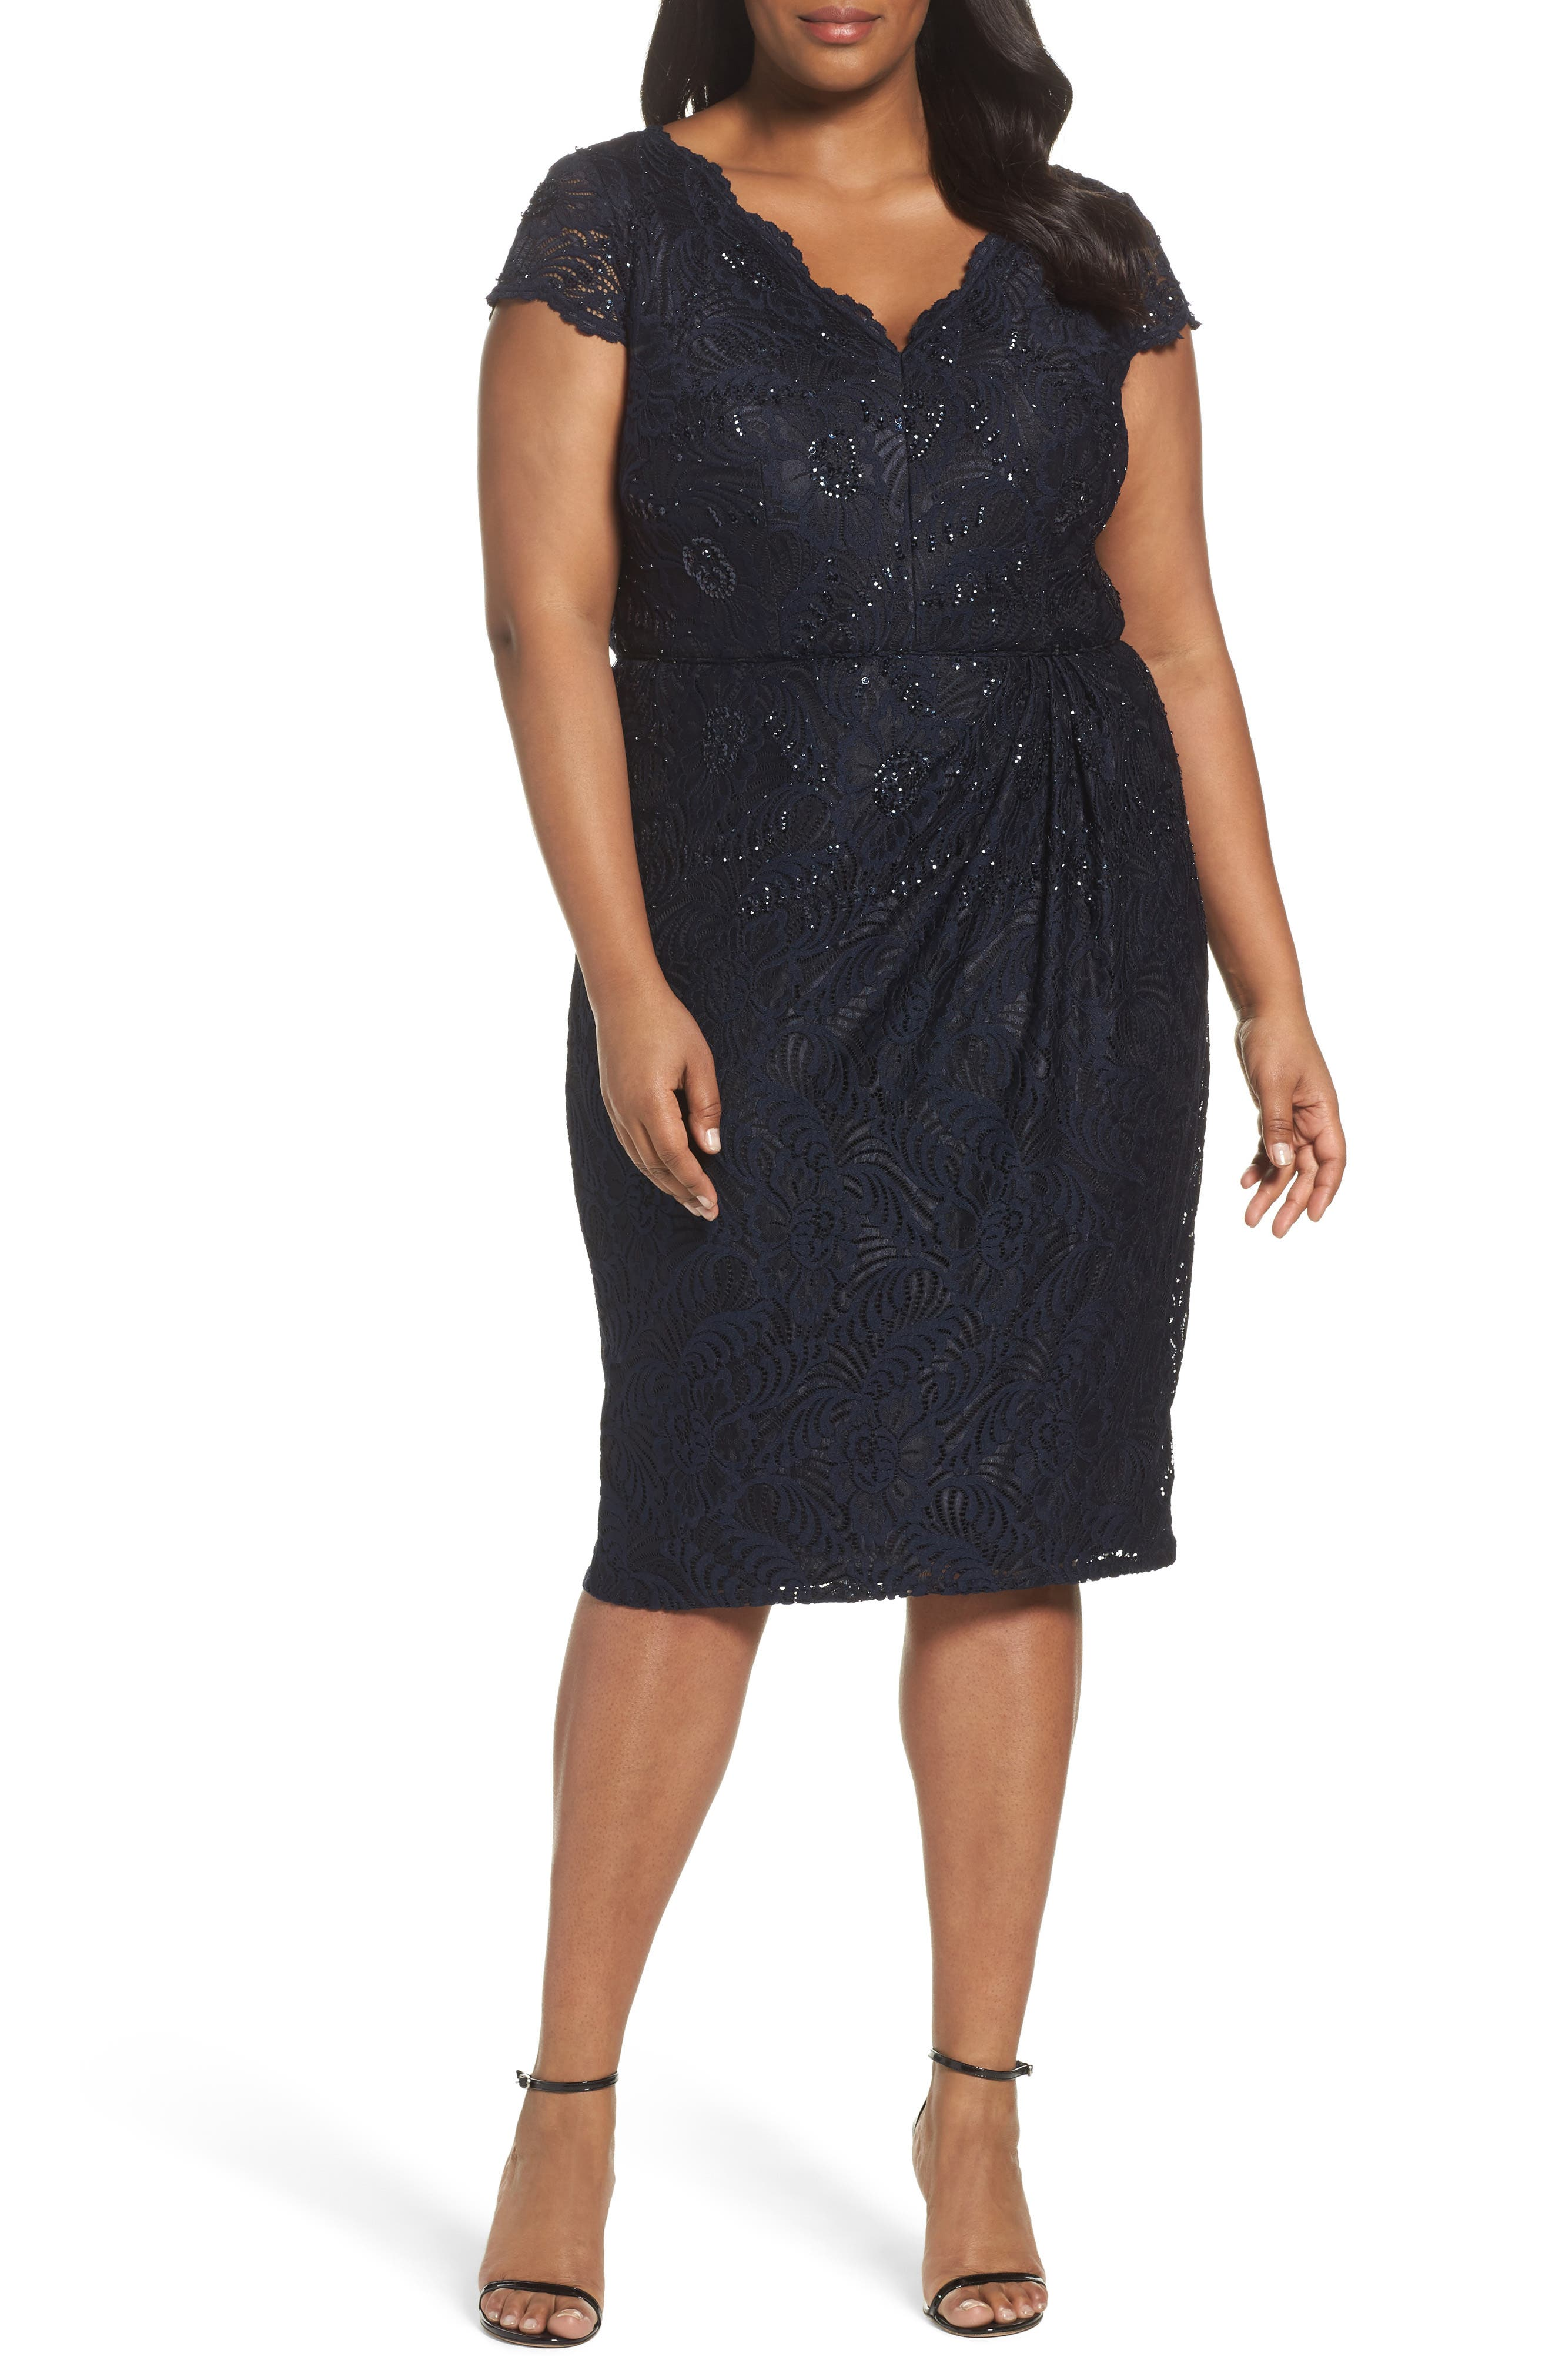 Adrianna Papell Embellished Stretch Lace Sheath Dress (Plus Size)